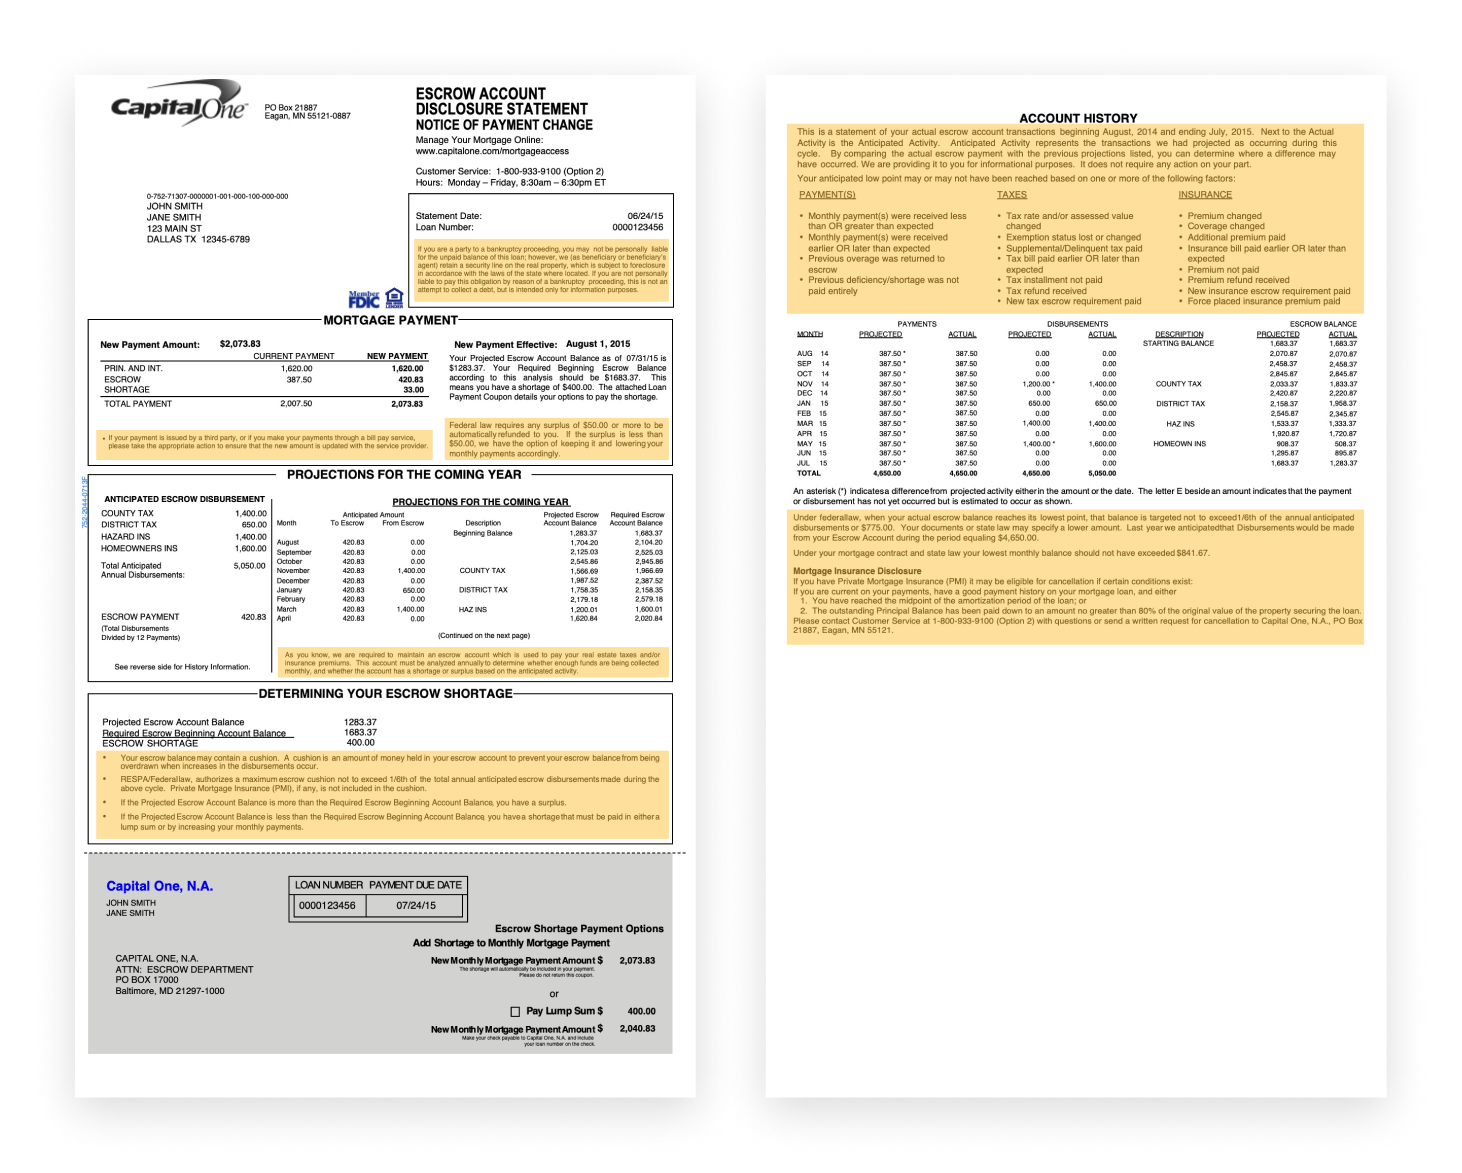 the old version of the escrow analysis statement with disclaimers highlighted